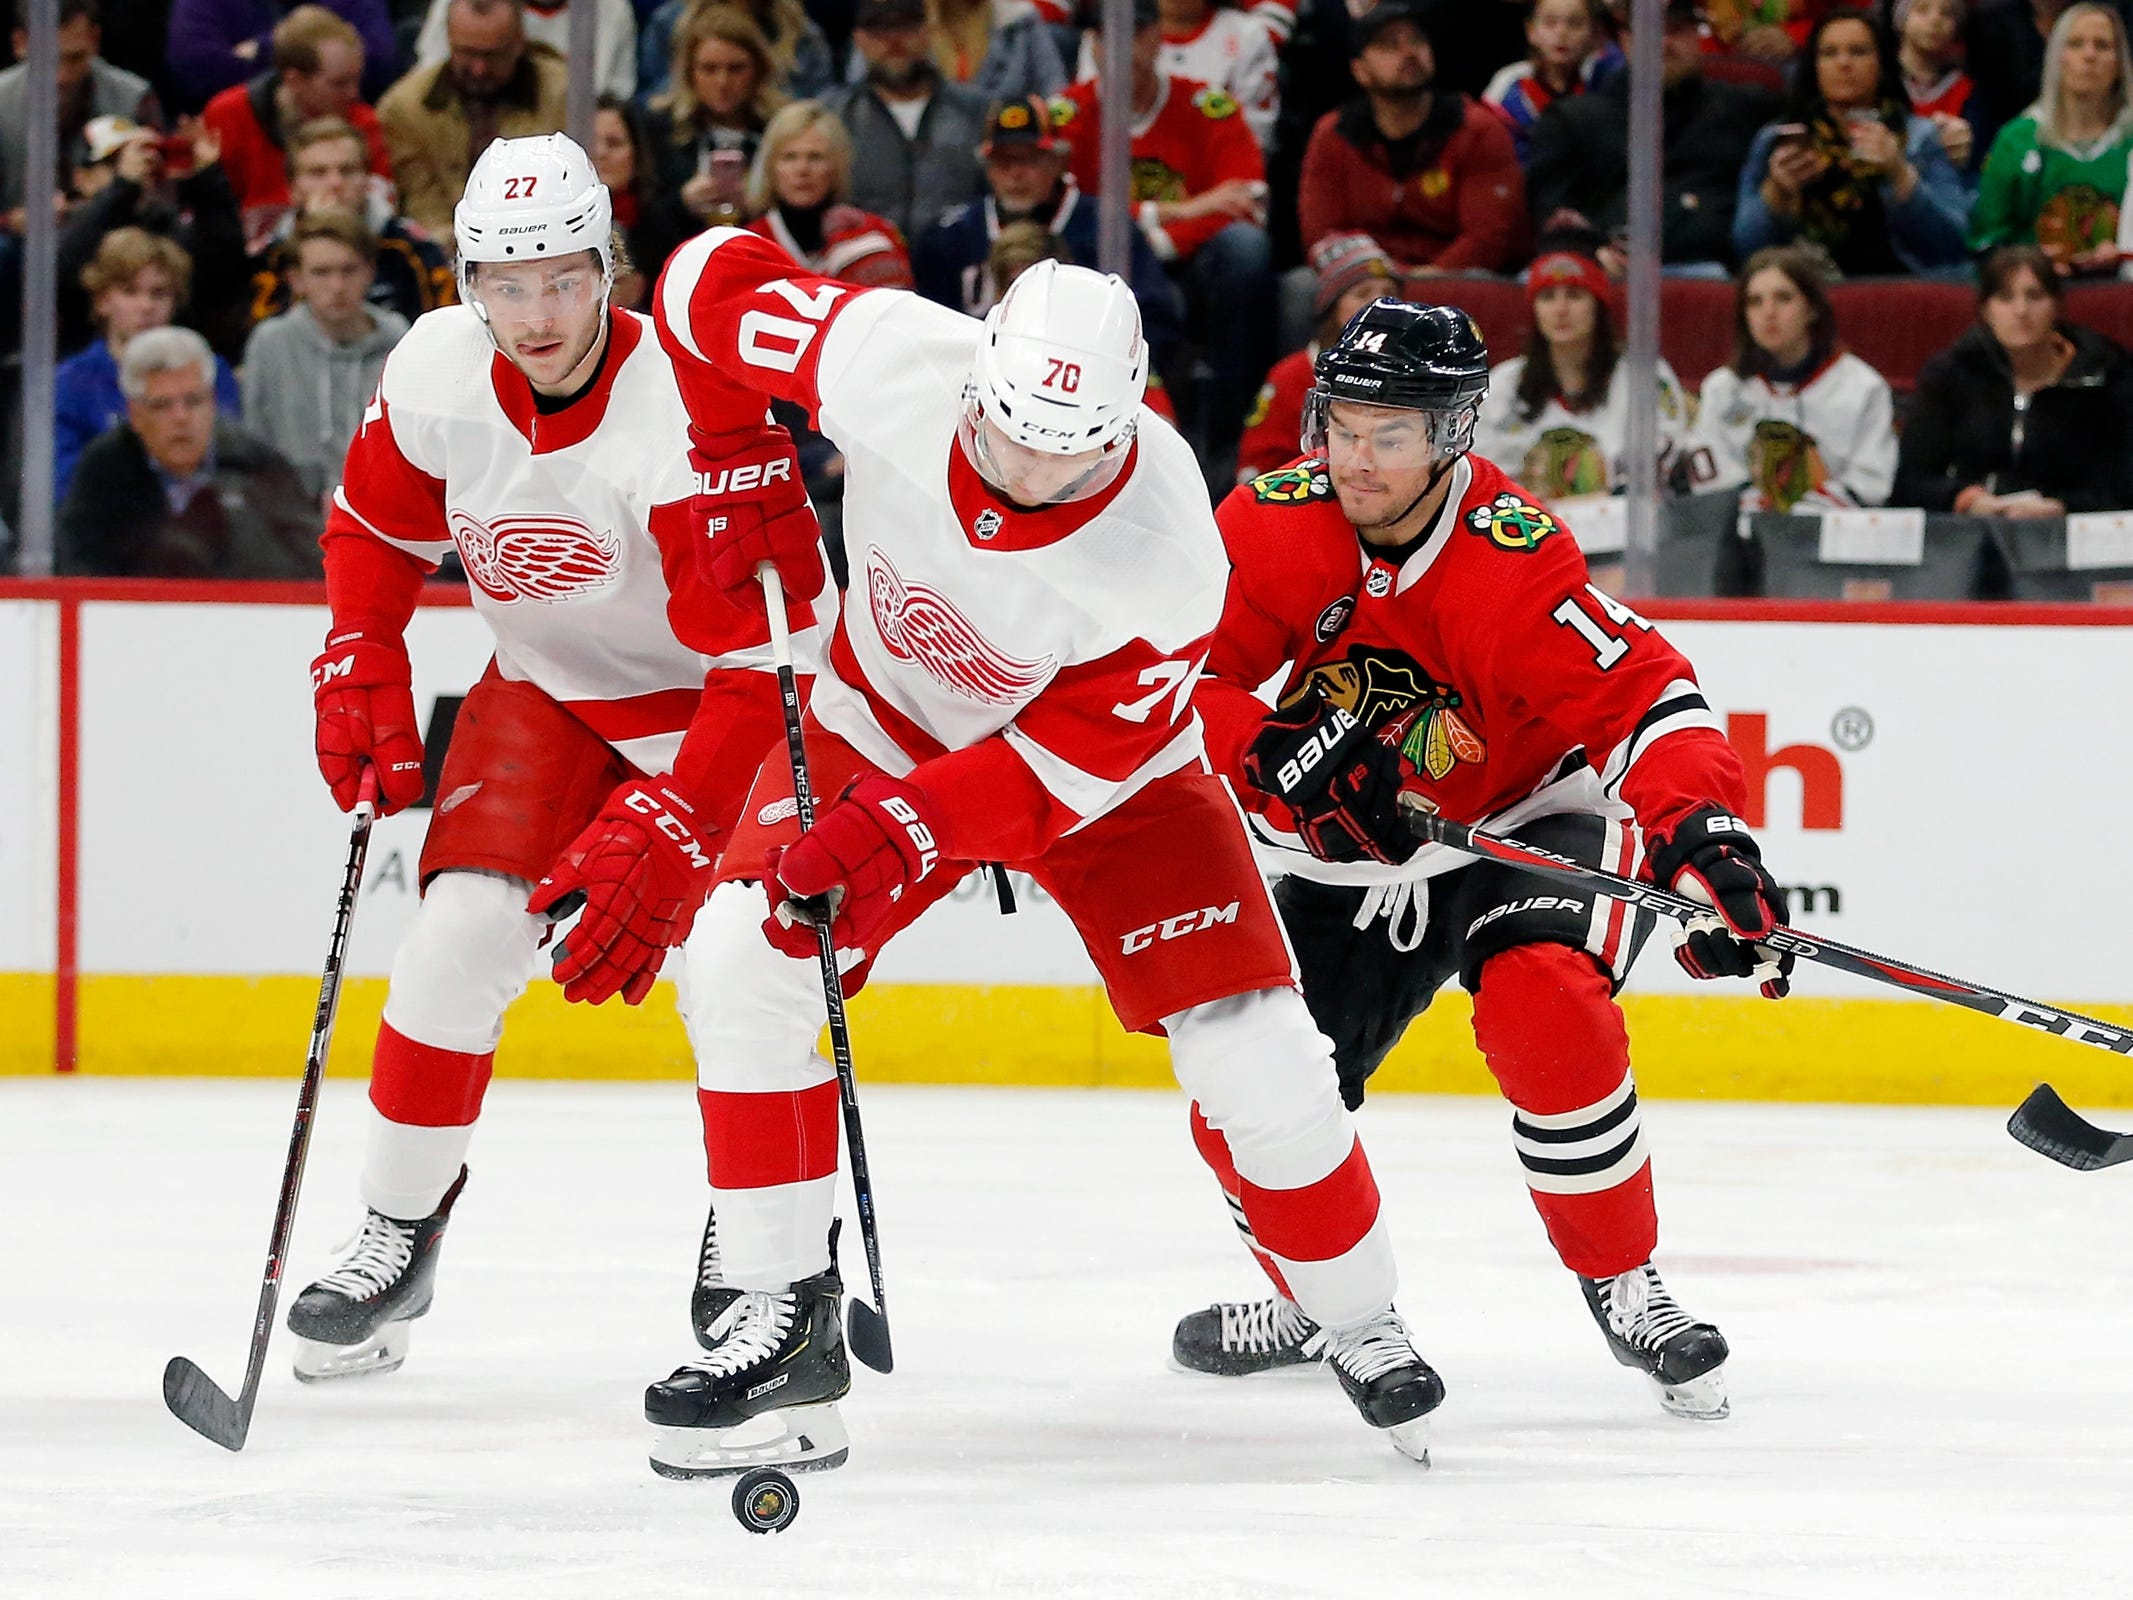 Detroit Red Wings center Christoffer Ehn controls the puck against Chicago Blackhawks left wing Chris Kunitz during the first period at United Center, Feb. 10, 2019.